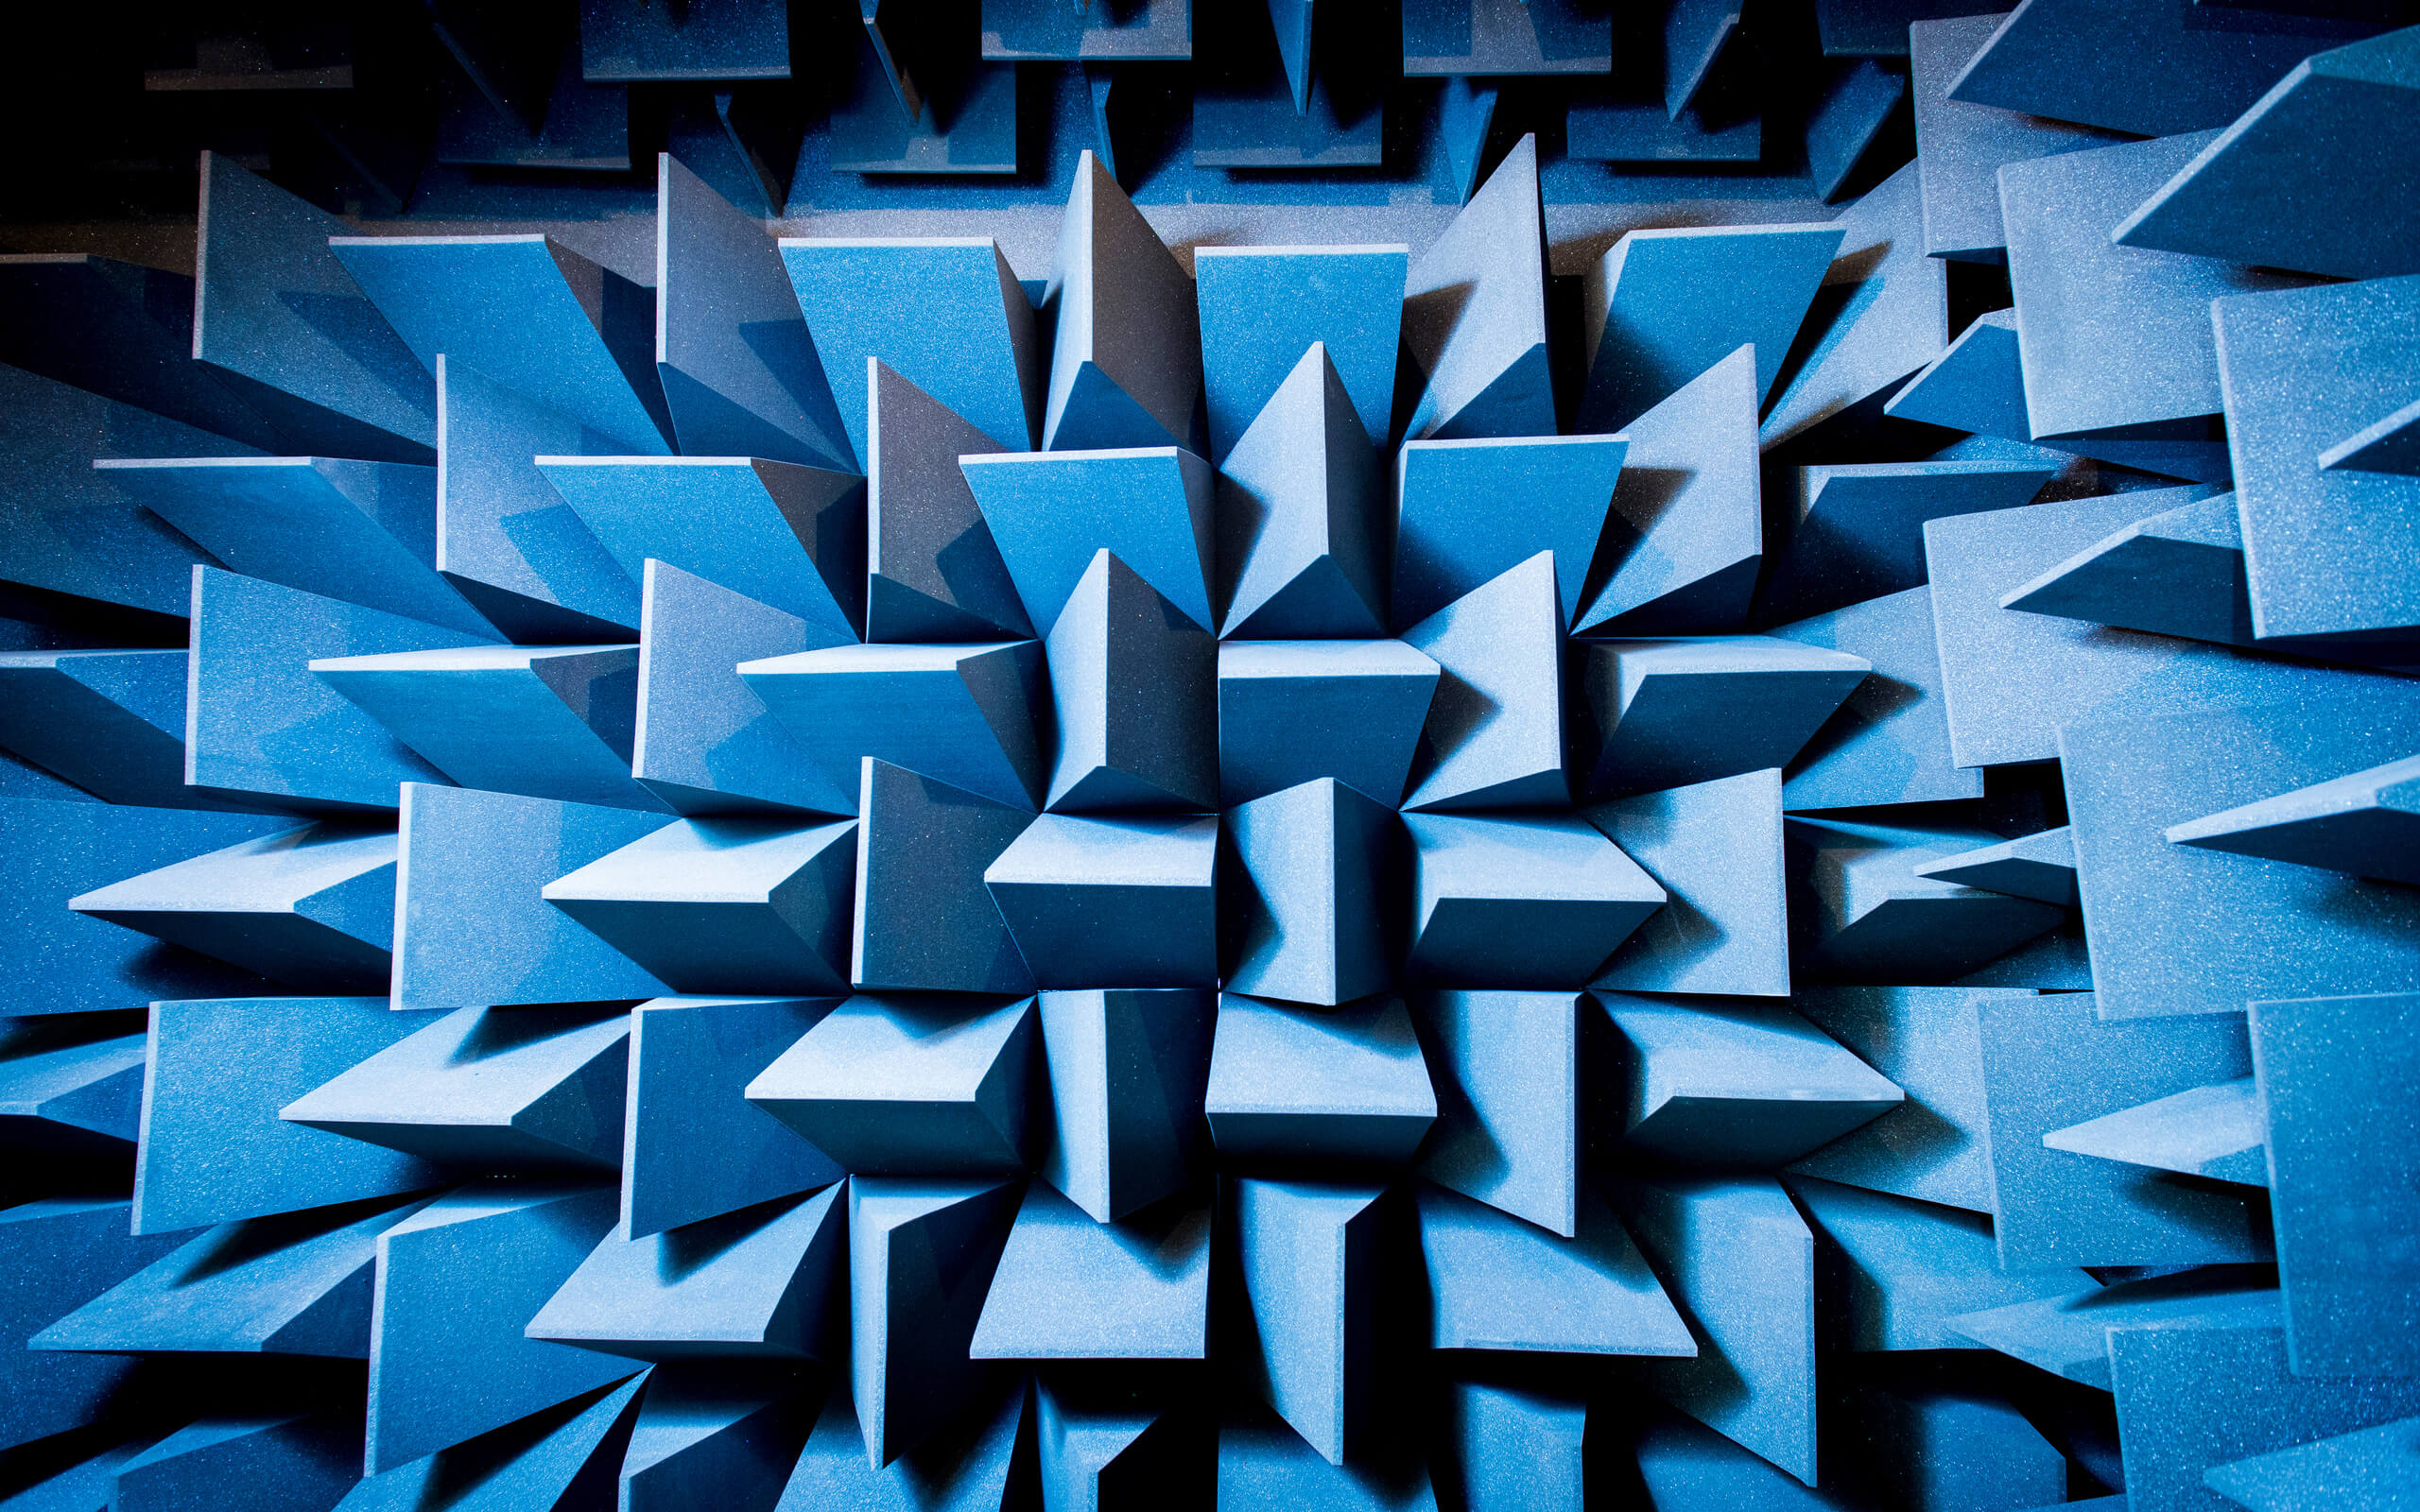 Blue three dimensional blocks spiked outwards.